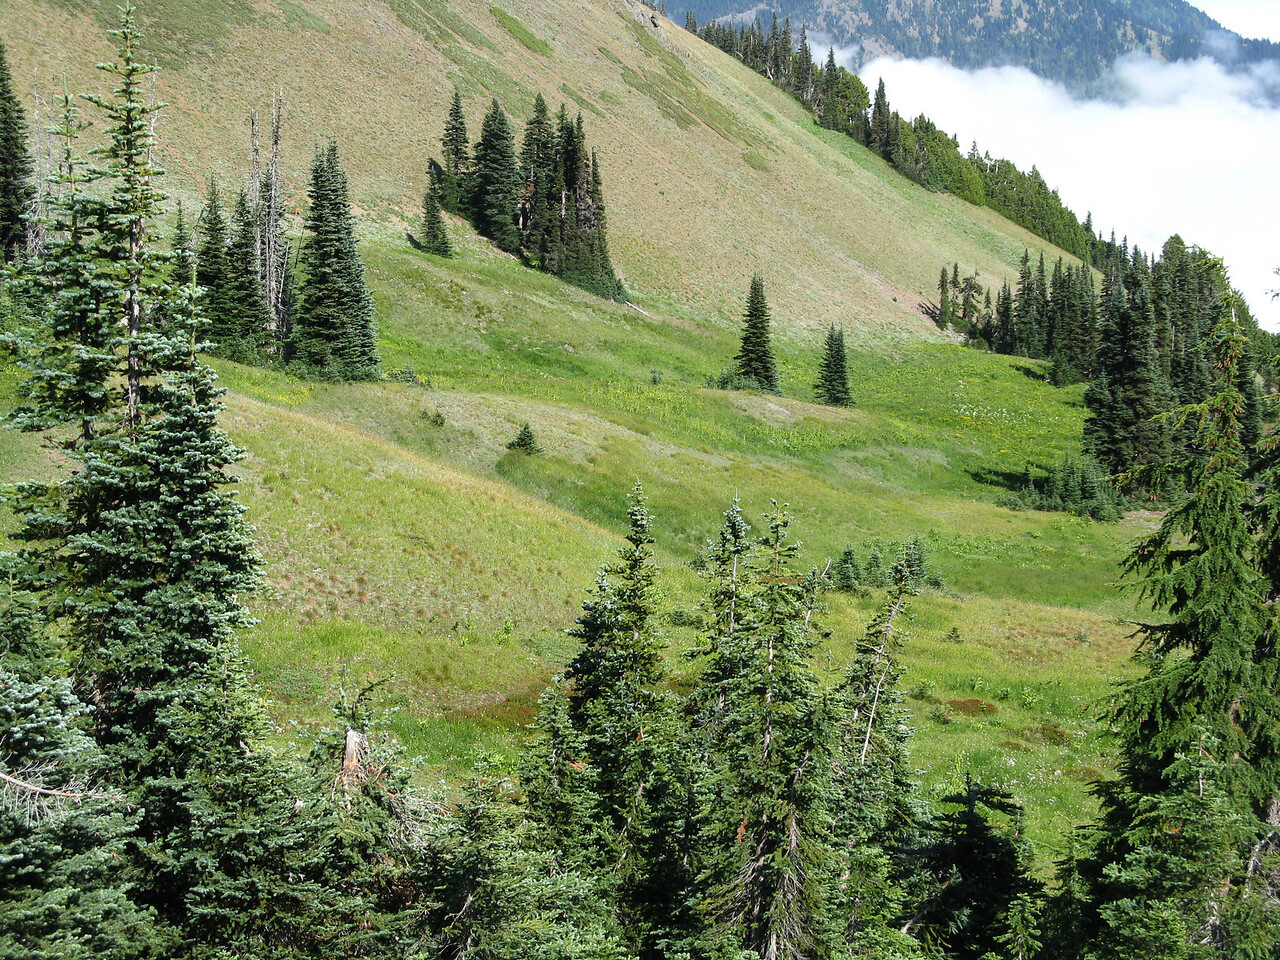 Another meadow below the trail.